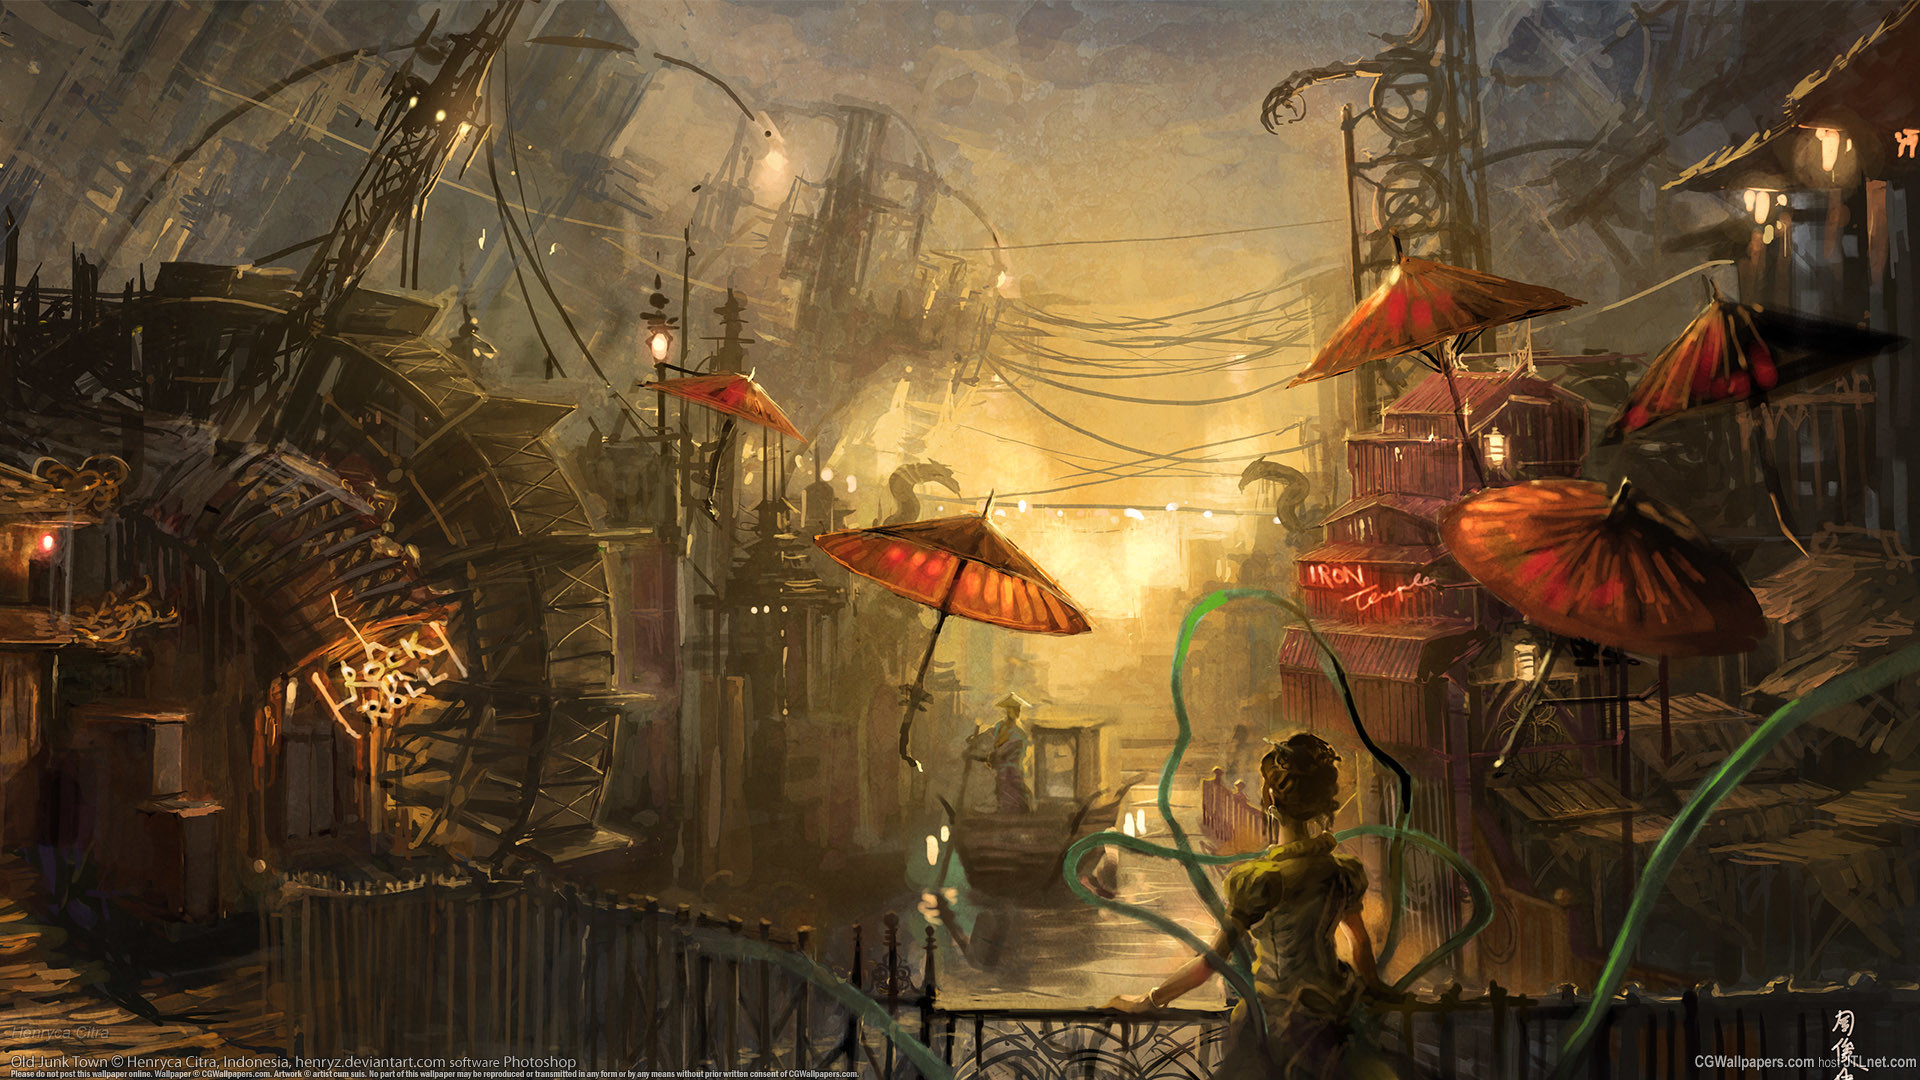 Animated Steampunk Wallpaper 66 Images